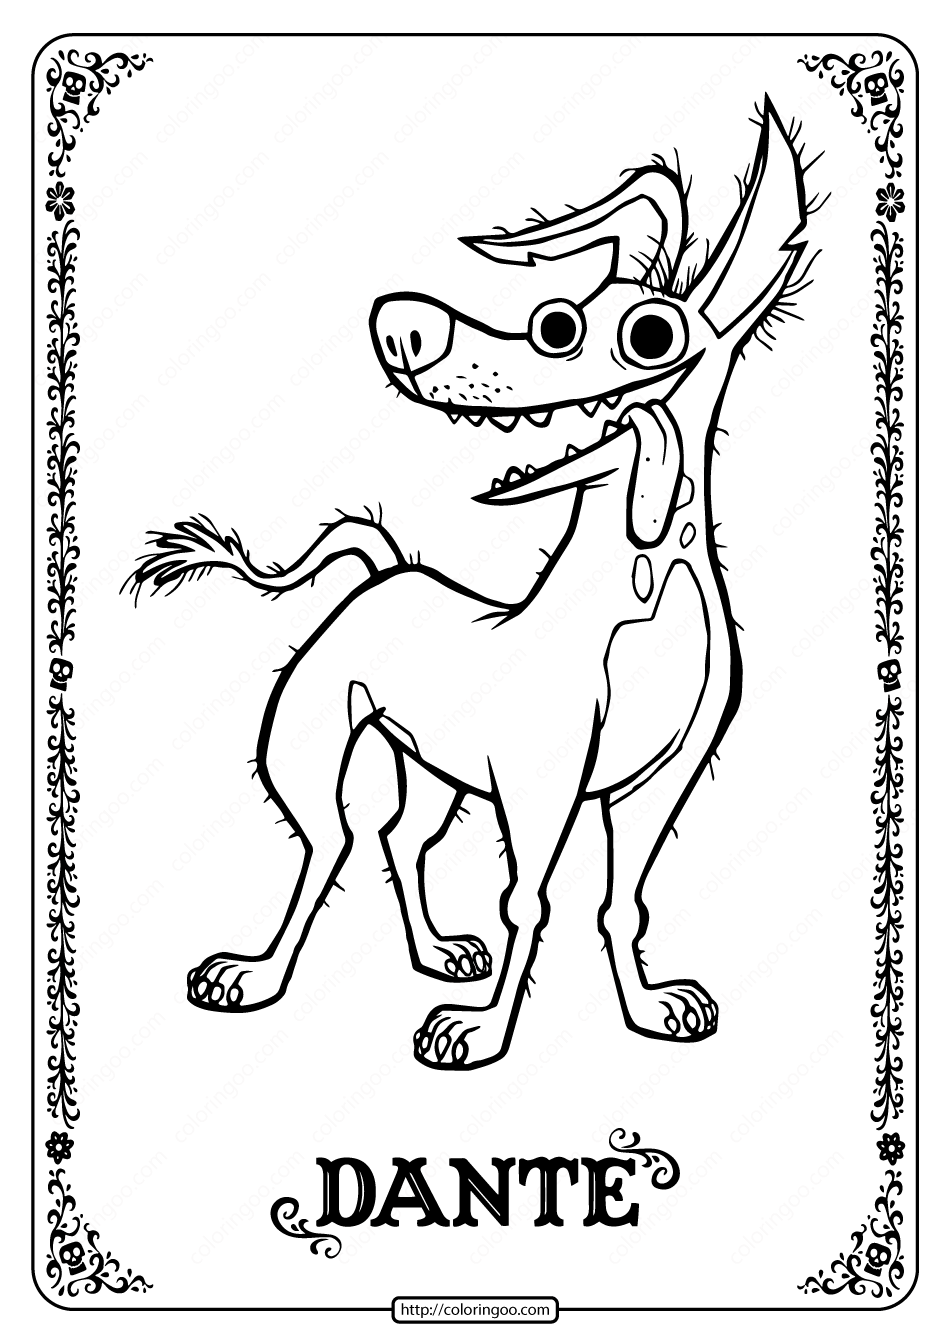 Printable Disney Coco Dante Coloring Pages - 01